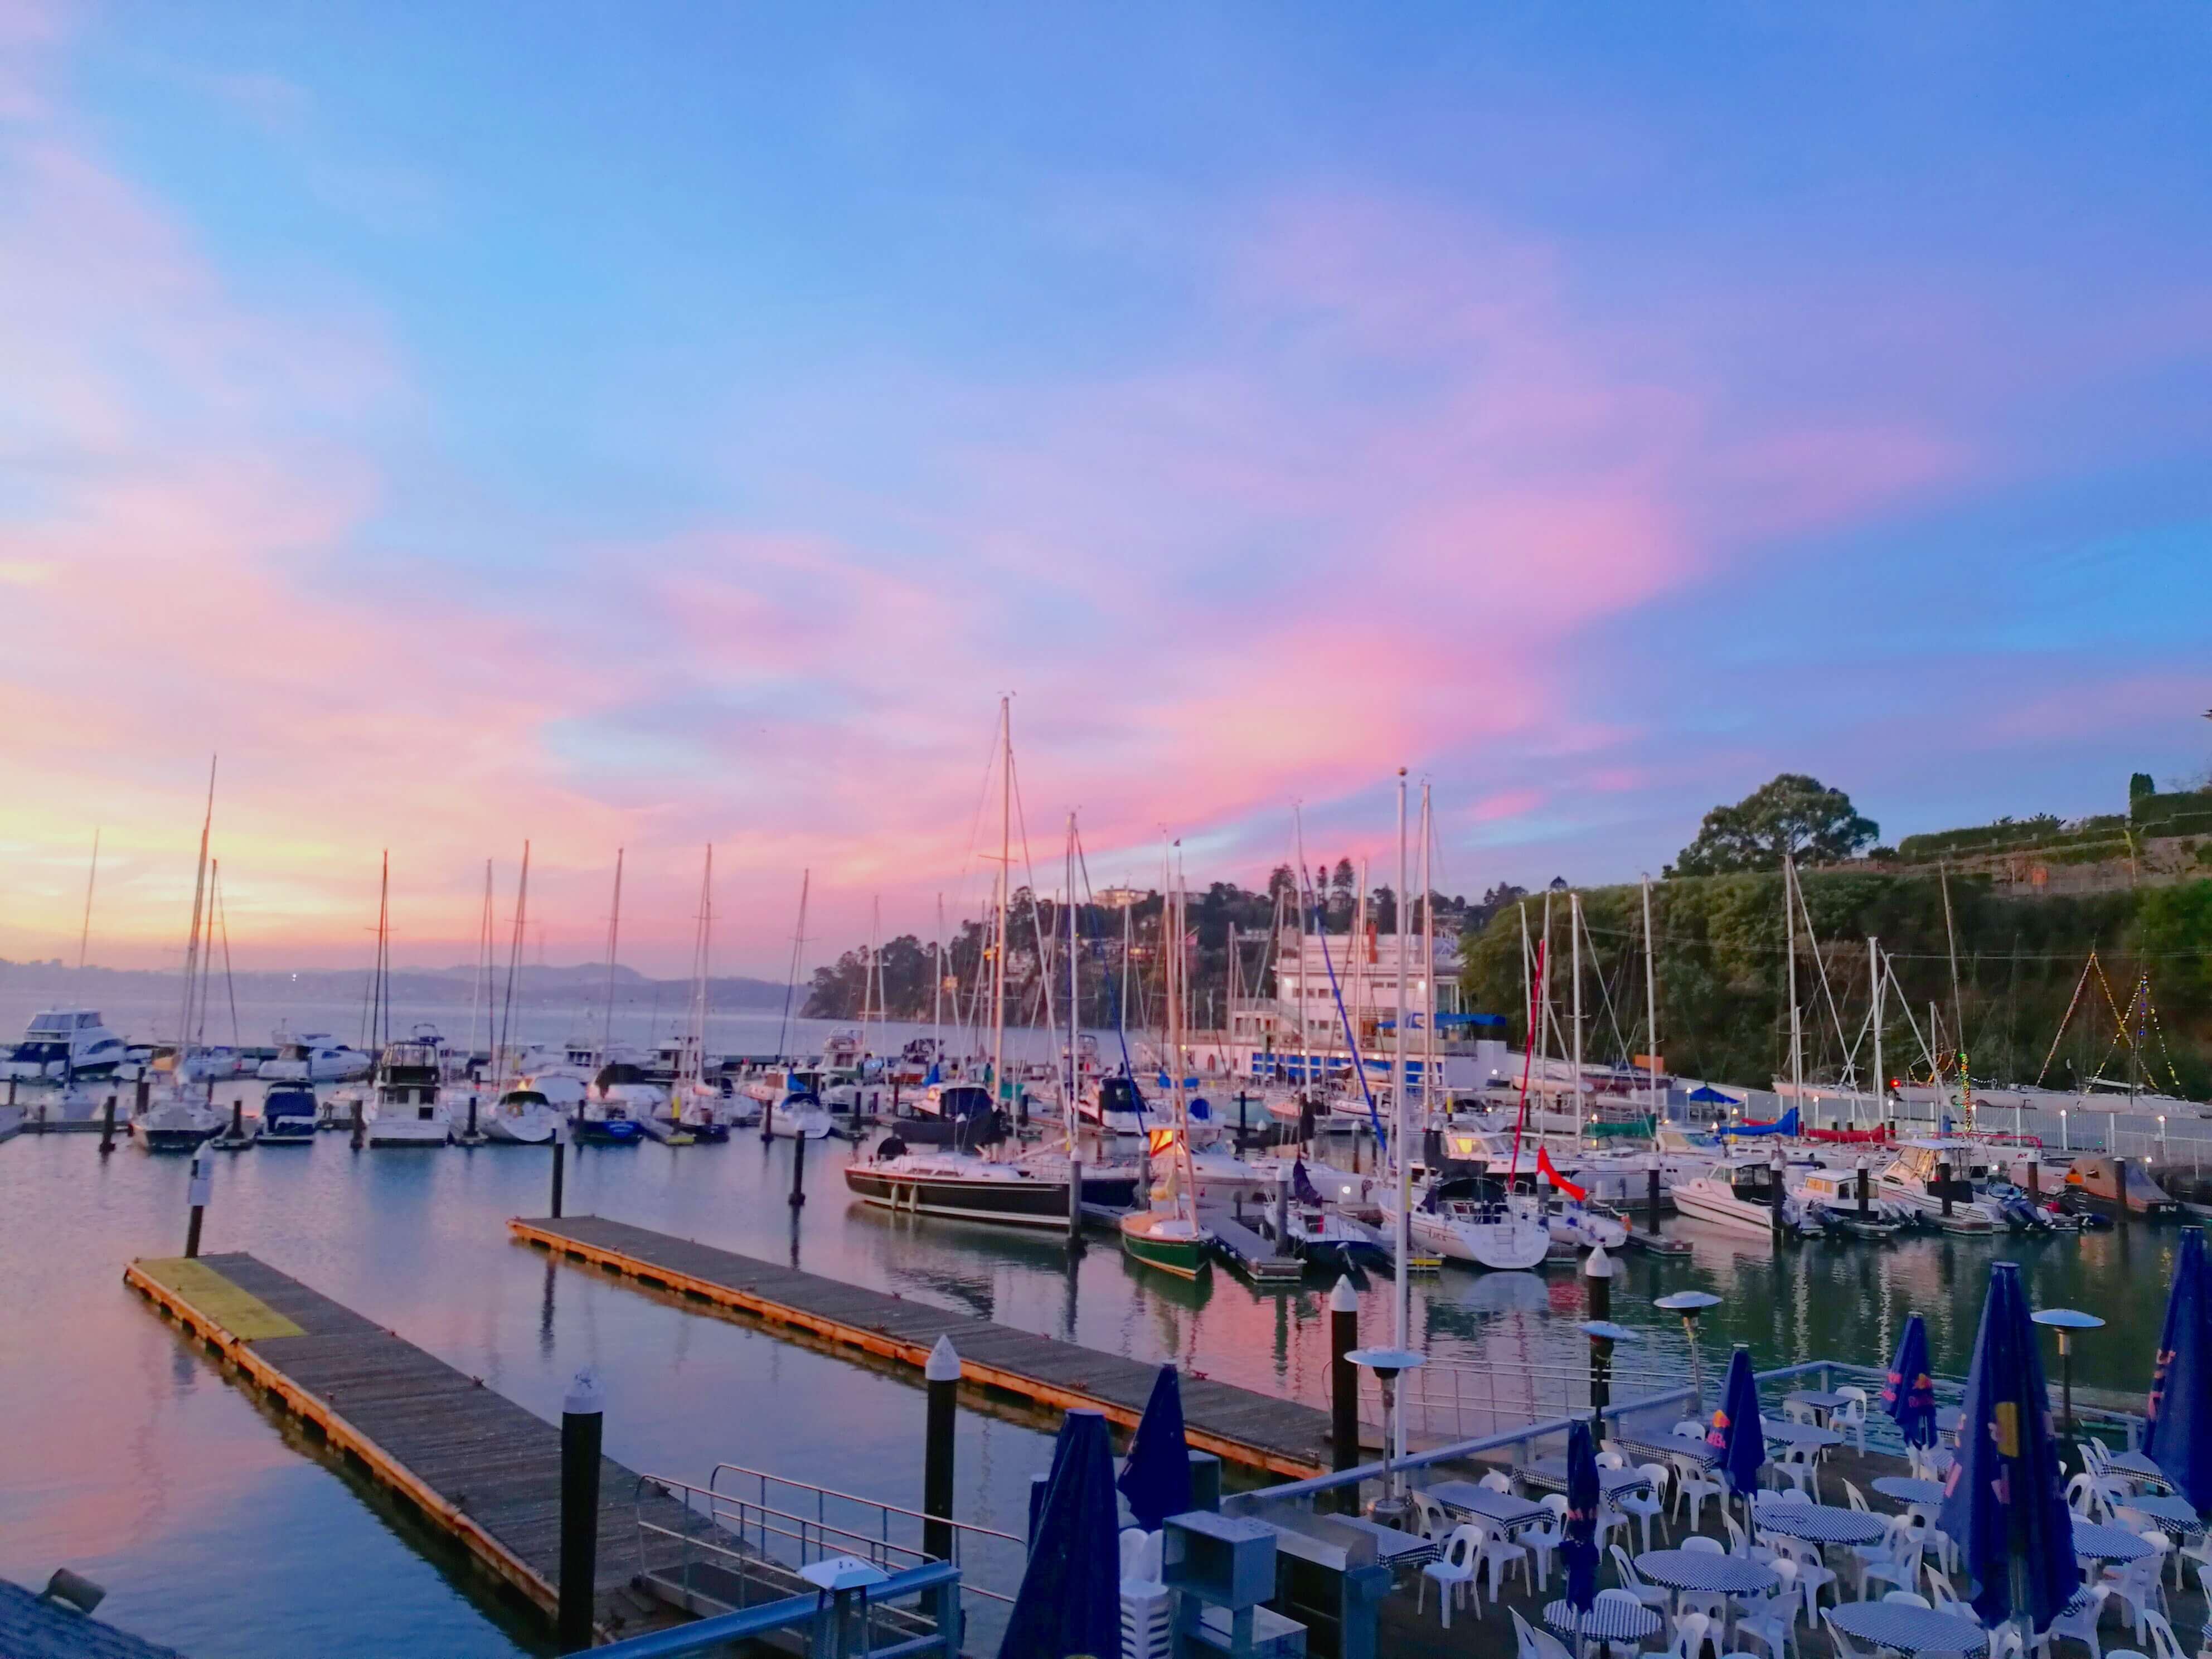 Visiting San Francisco but want to get away from the hustle and bustle of the city? Why not stay across the bay at Waters Edge Hotel in Tiburon